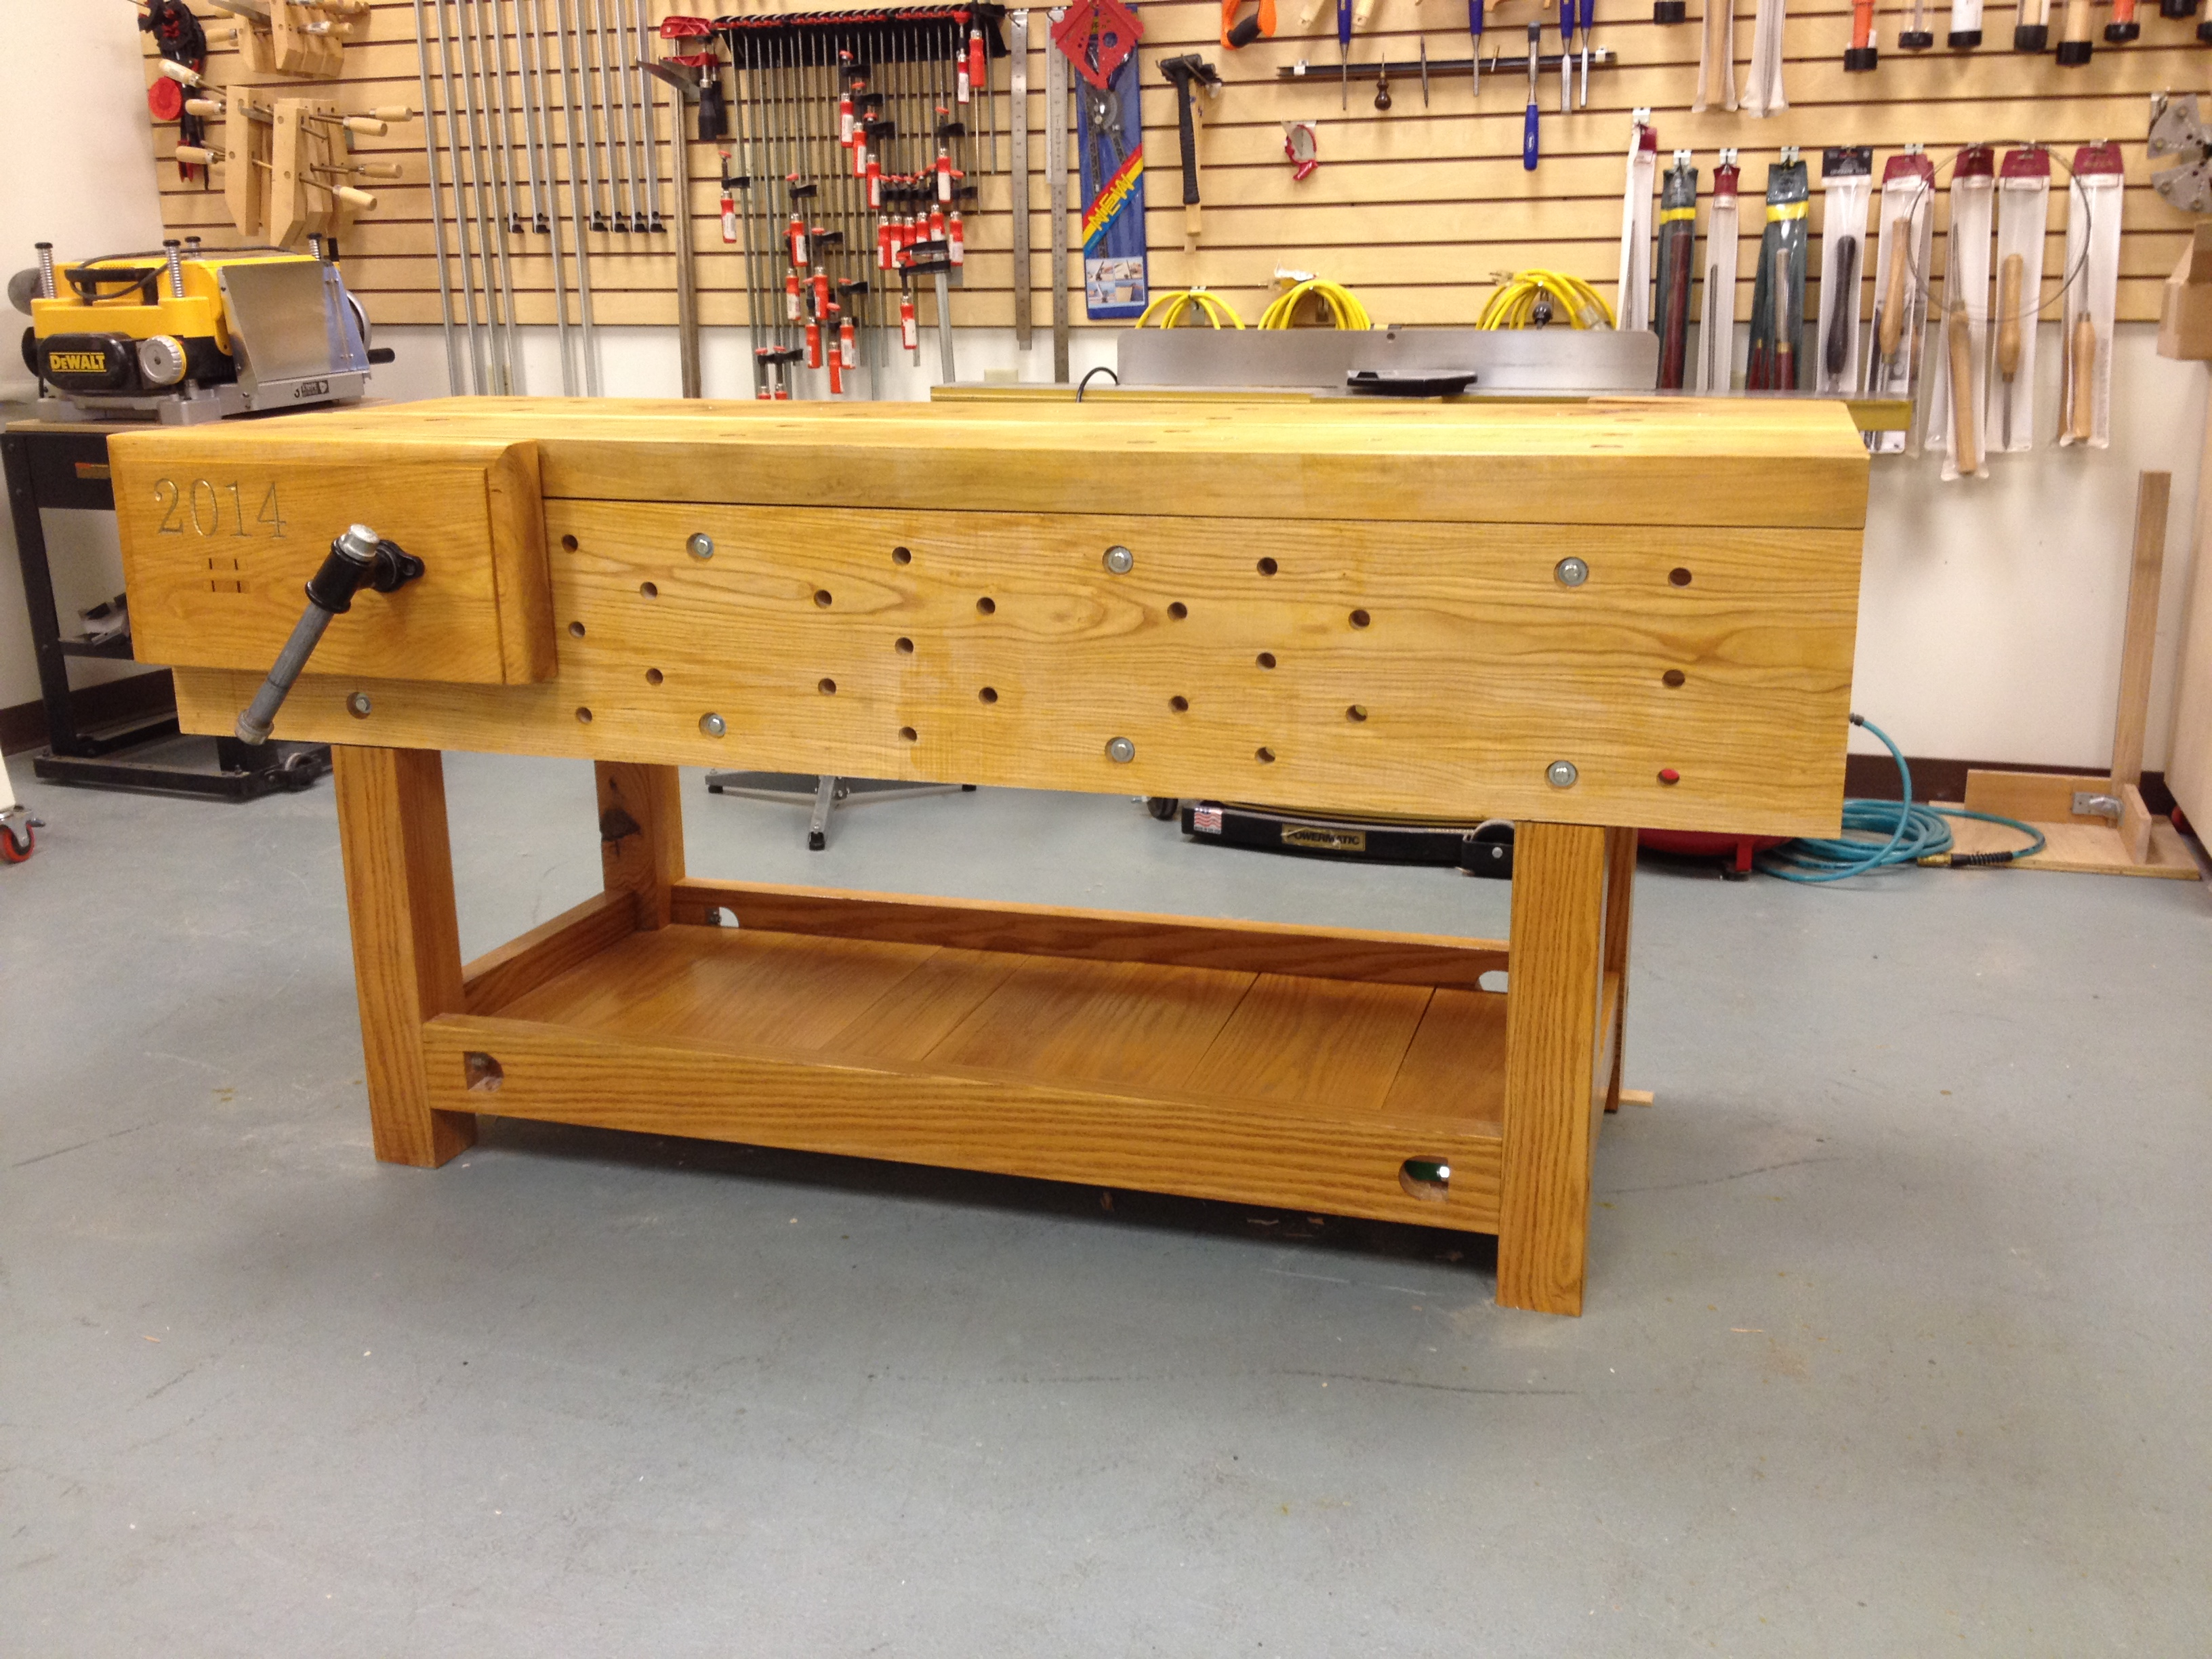 Nicholson Bench Project Shellac On A Workbench A Woodworker 39 S Musings